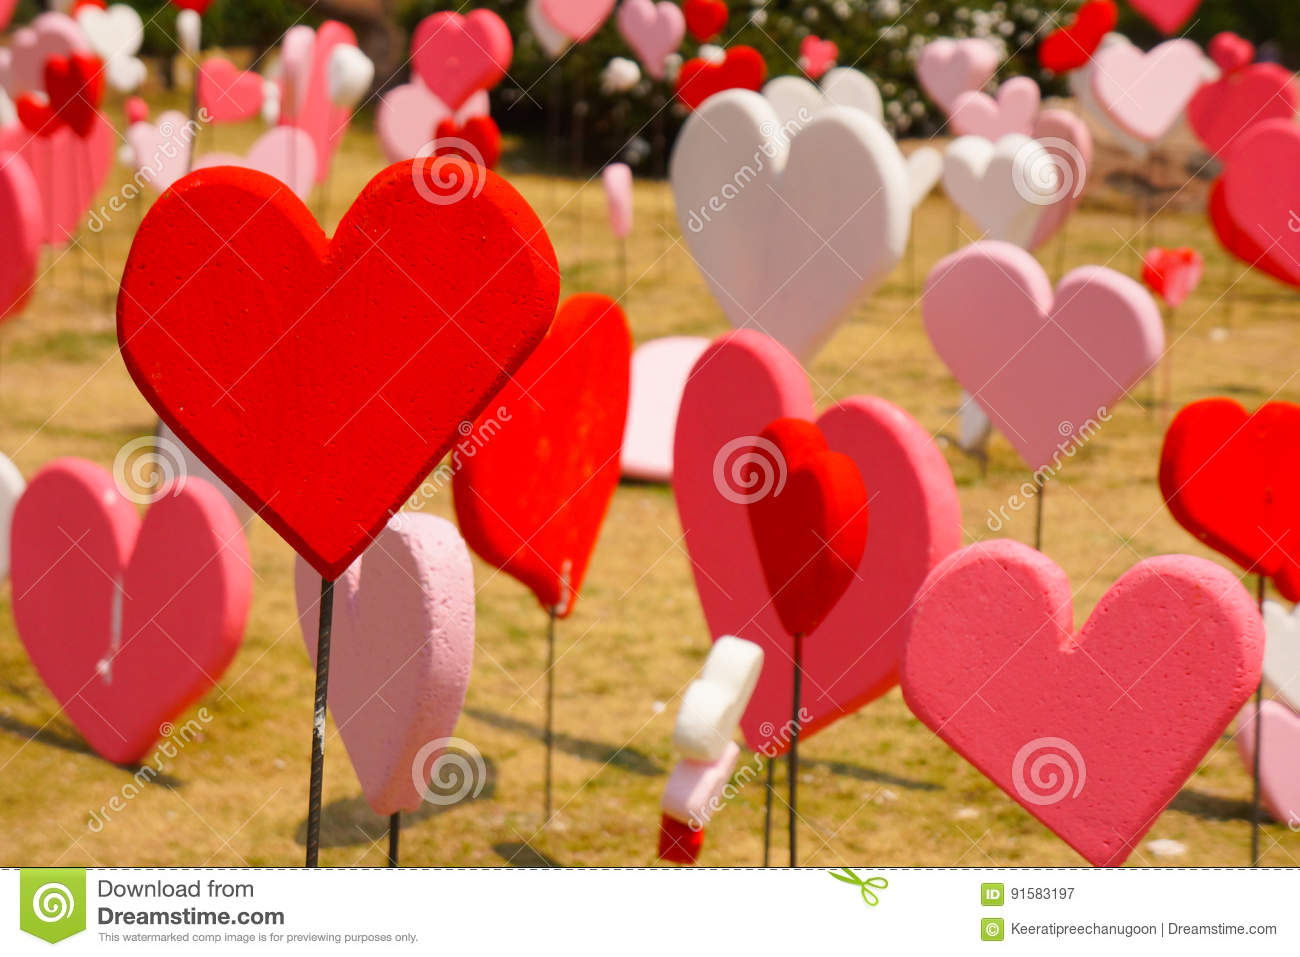 Valentine S Day Wallpapers Love Romantic Theme Many Red Shape